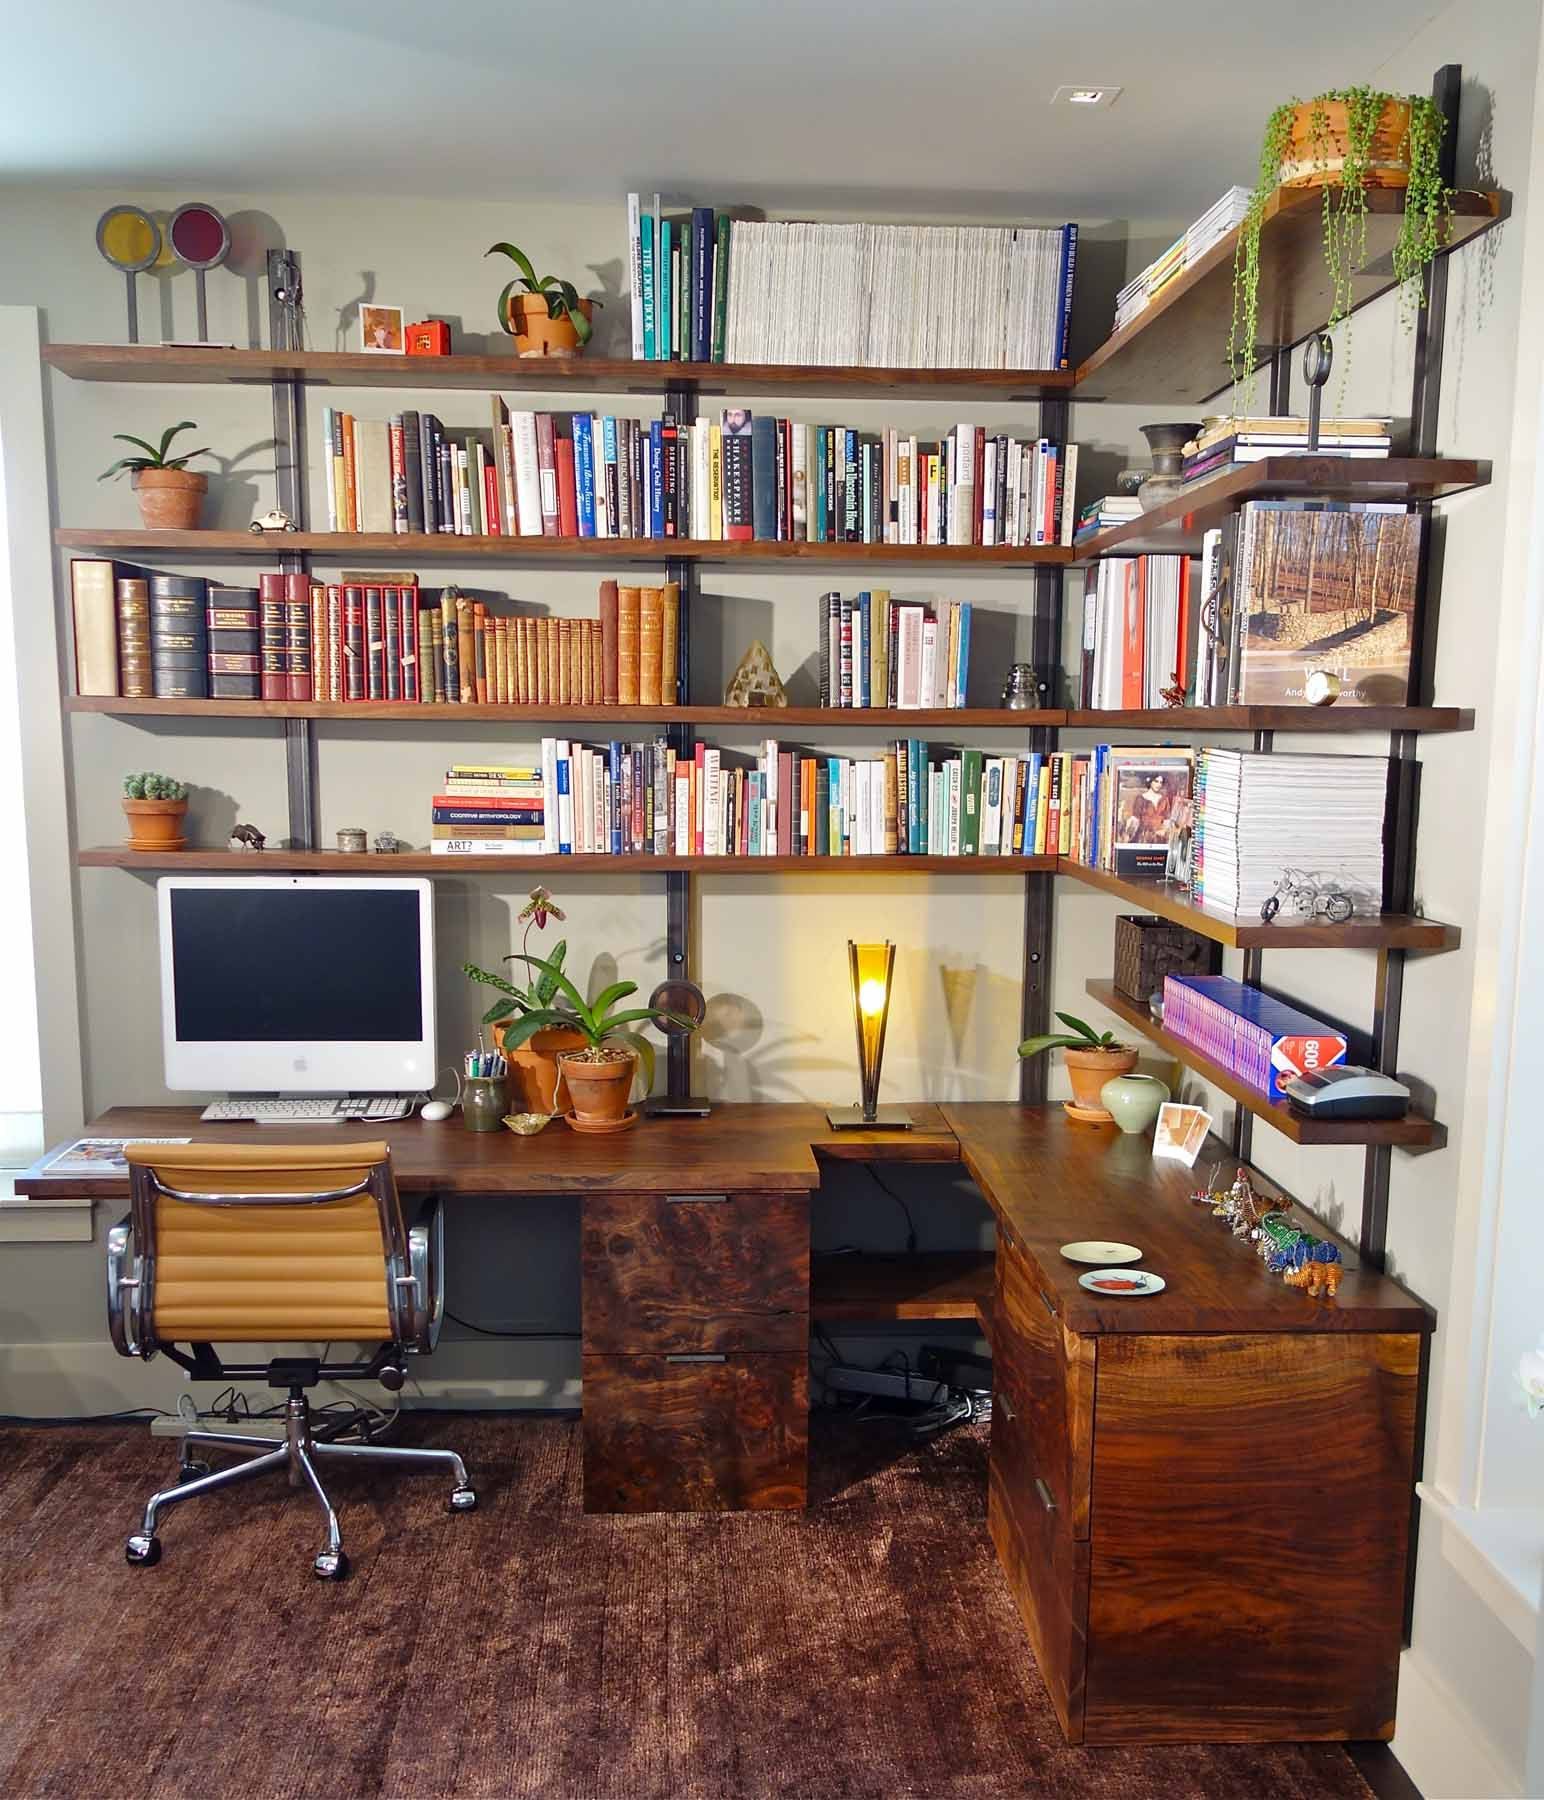 cheap office shelving. Office Desk Shelving And Bookshelf Idea Google Search Study_ideas Pinterest Cheap E